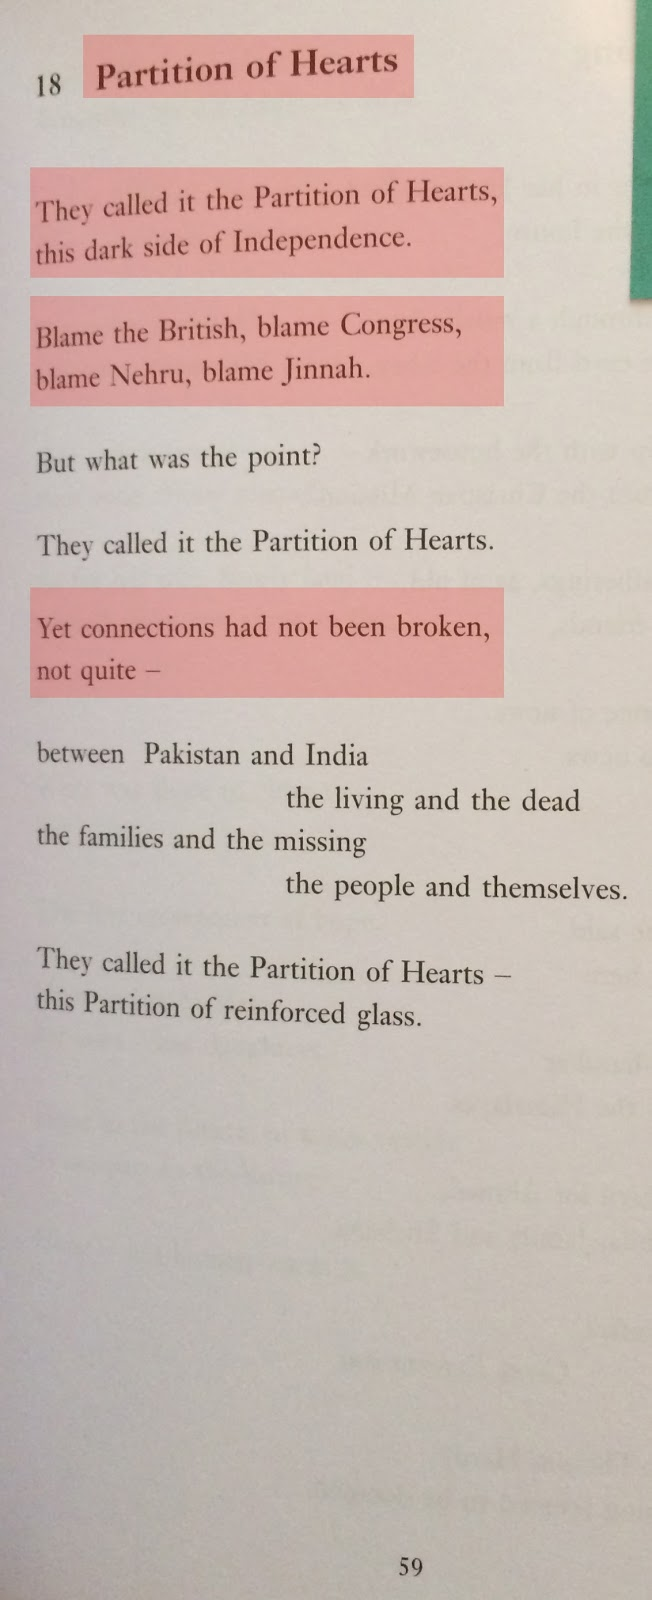 Major Project: Moniza Alvi - At the time of Partition (poem